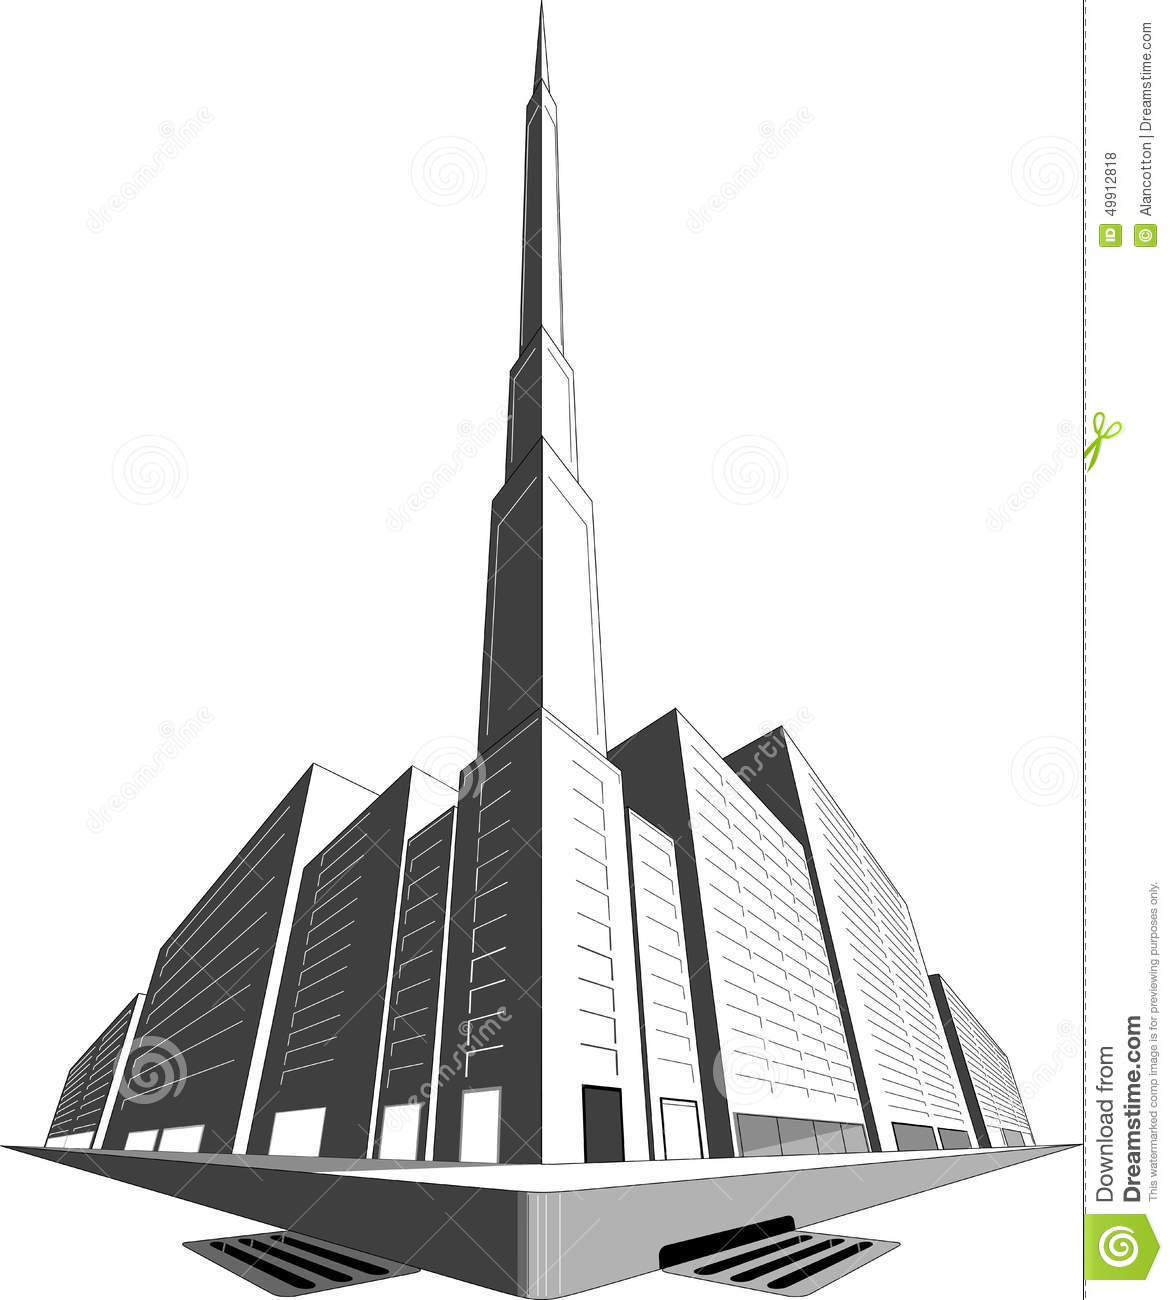 Perspective De 3 Points Illustration Stock Illustration